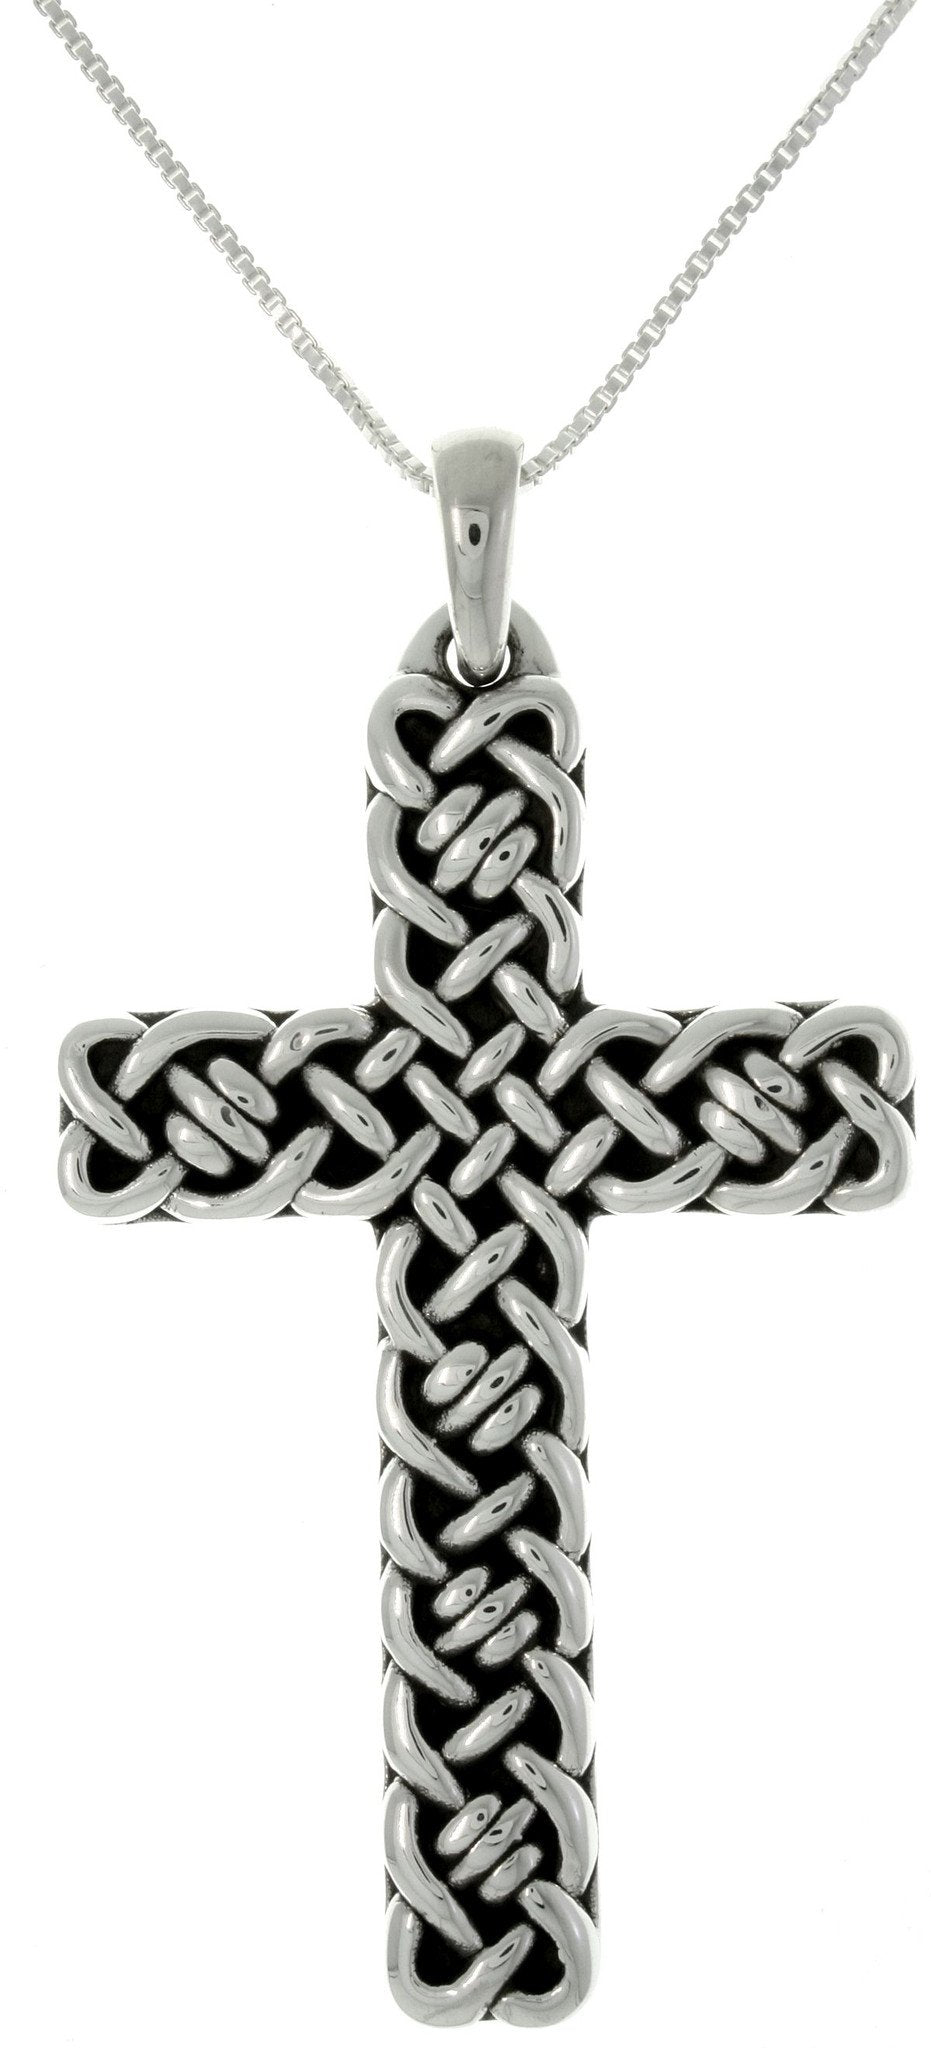 Jewelry Trends Sterling Silver Celtic Weave Cross Pendant with 18 Inch Box Chain Necklace